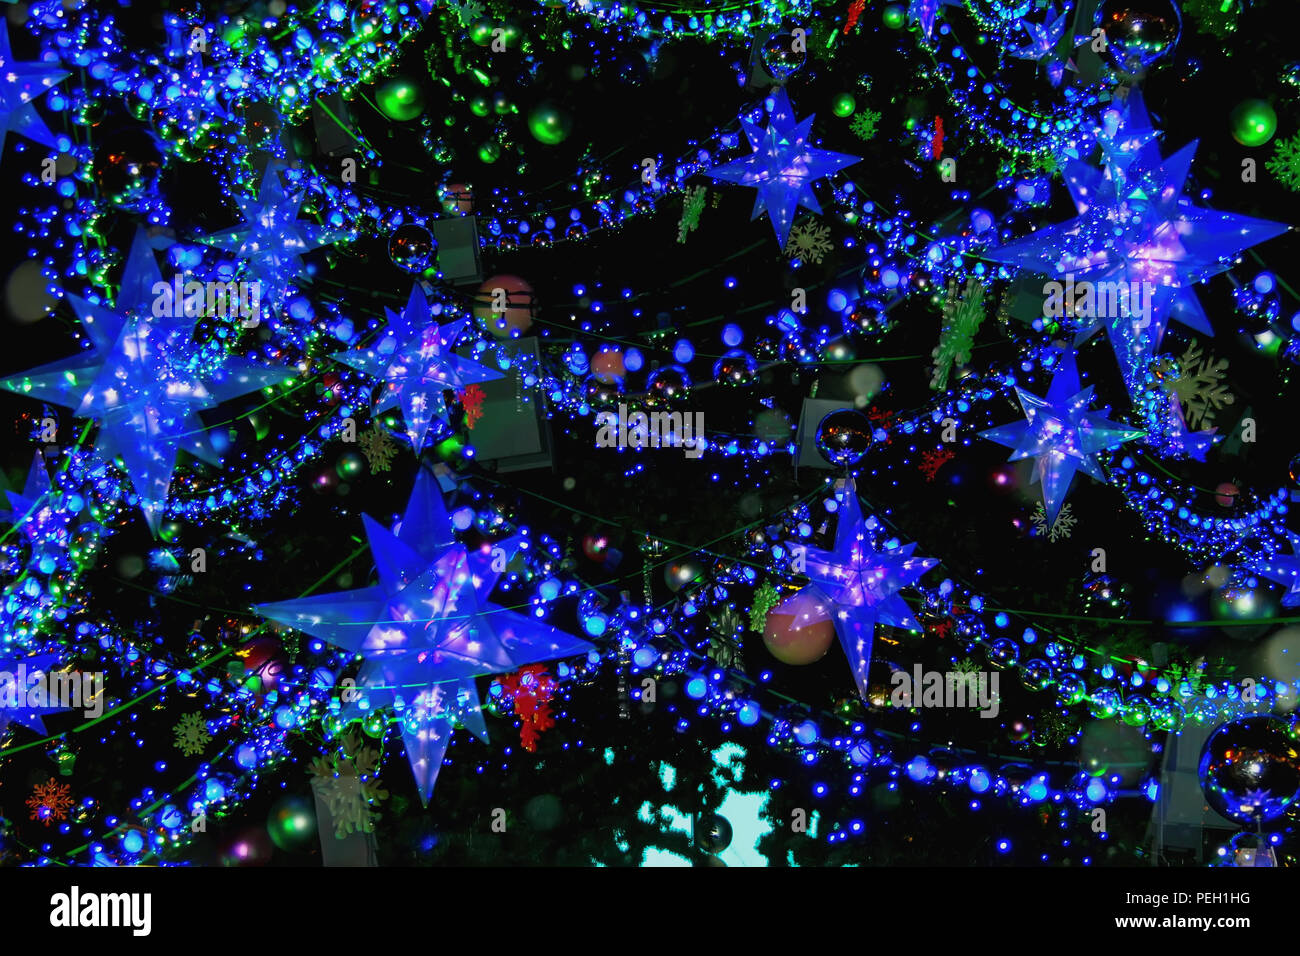 Christmas tree with decorations, christmas stars, snowflakes, balls, garlands. Abstract festive background. Bright blue backdrop for design - Stock Image